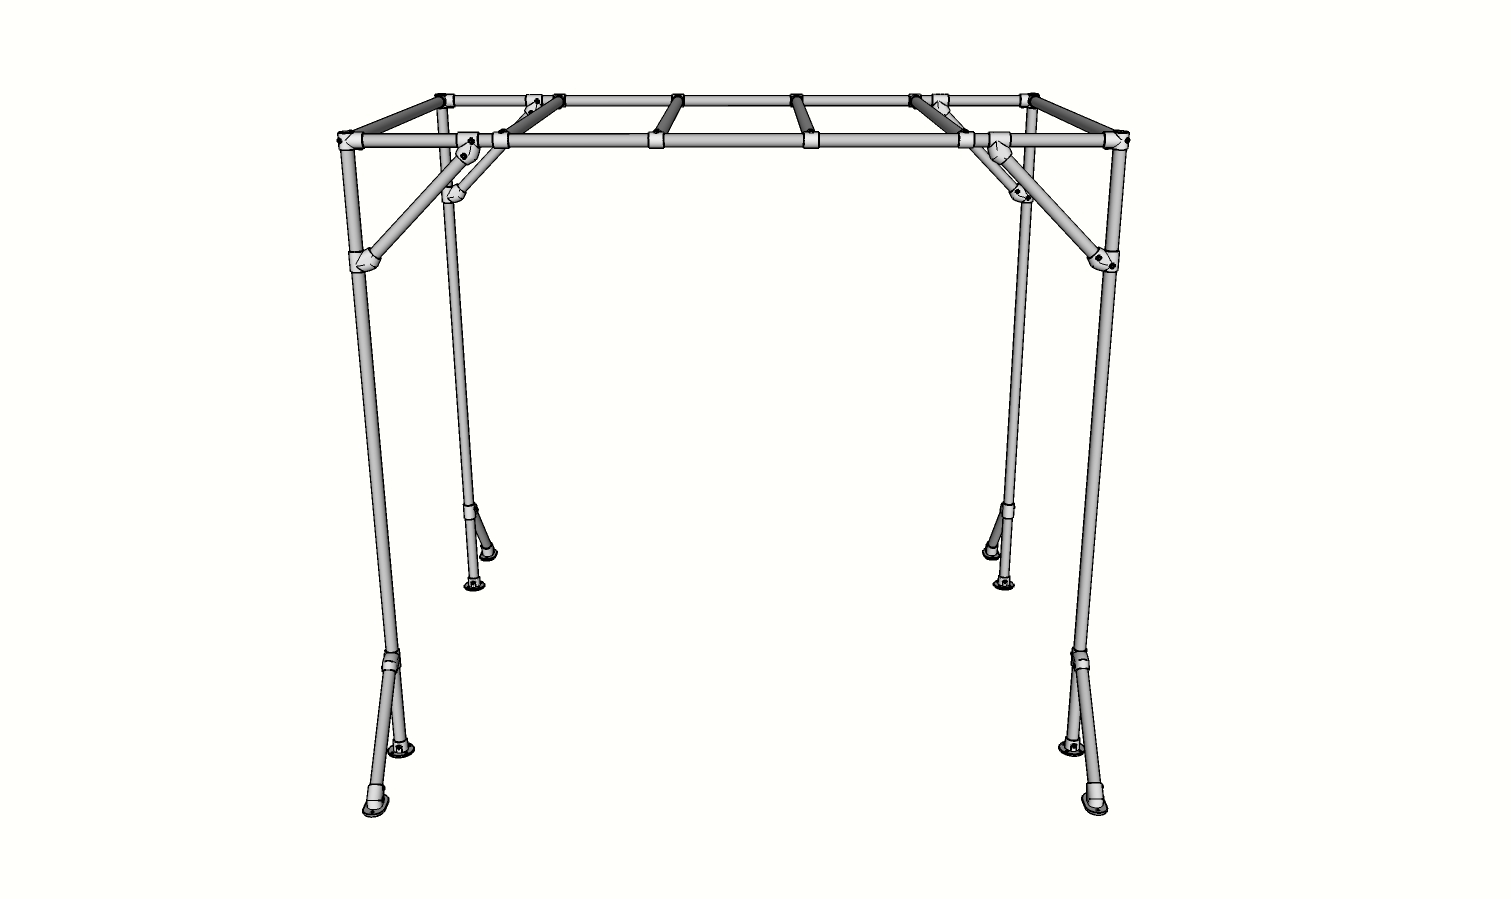 DHZ Monkey Bars